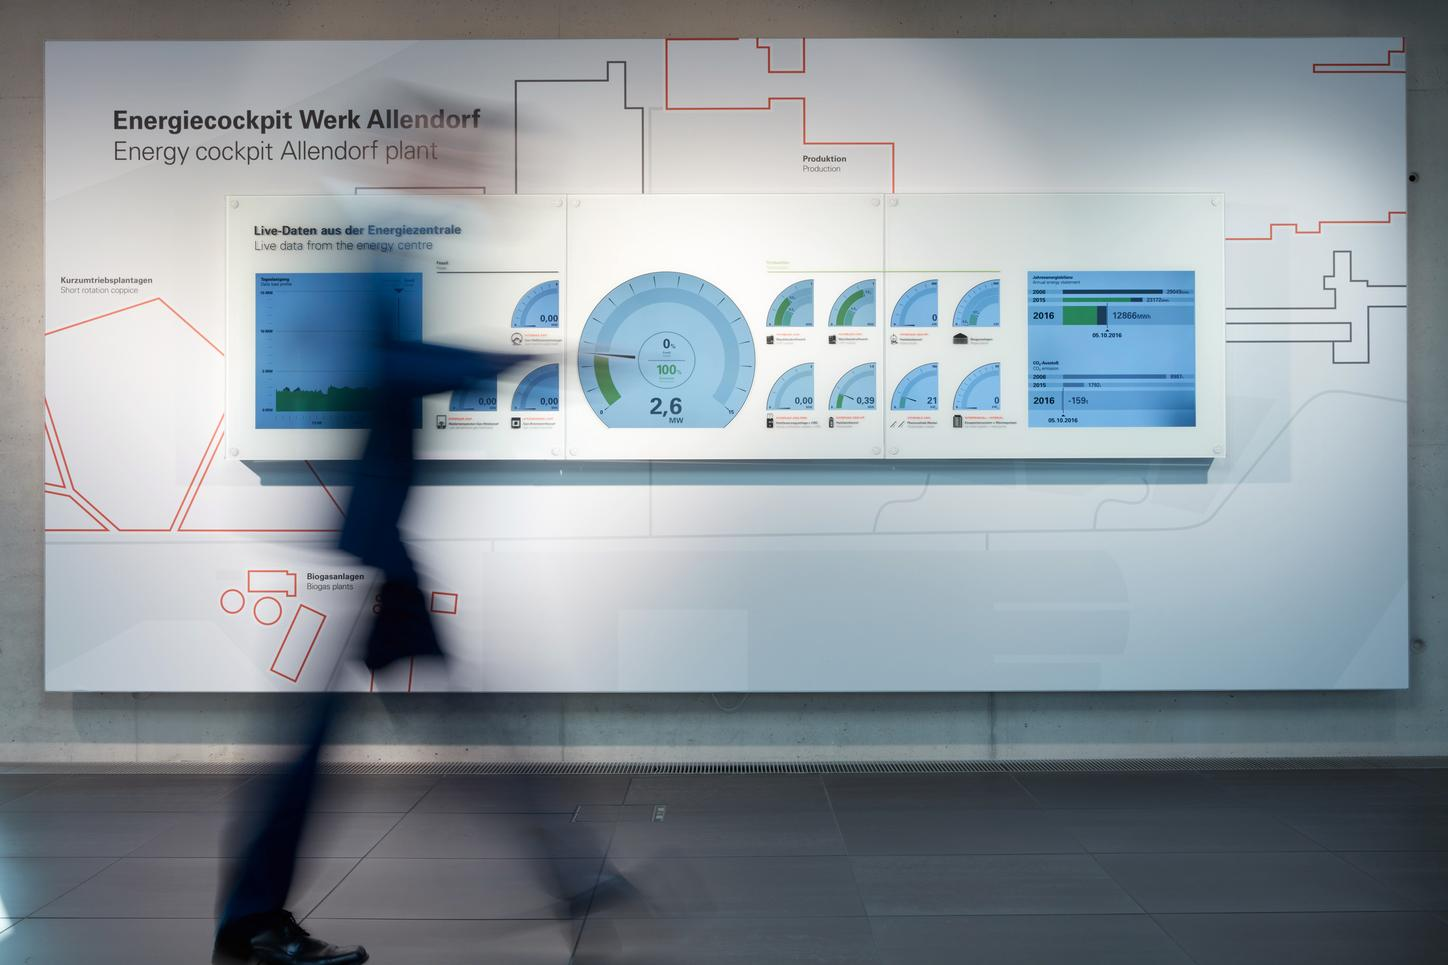 The image shows a blurred, passing person in front of a graphic.